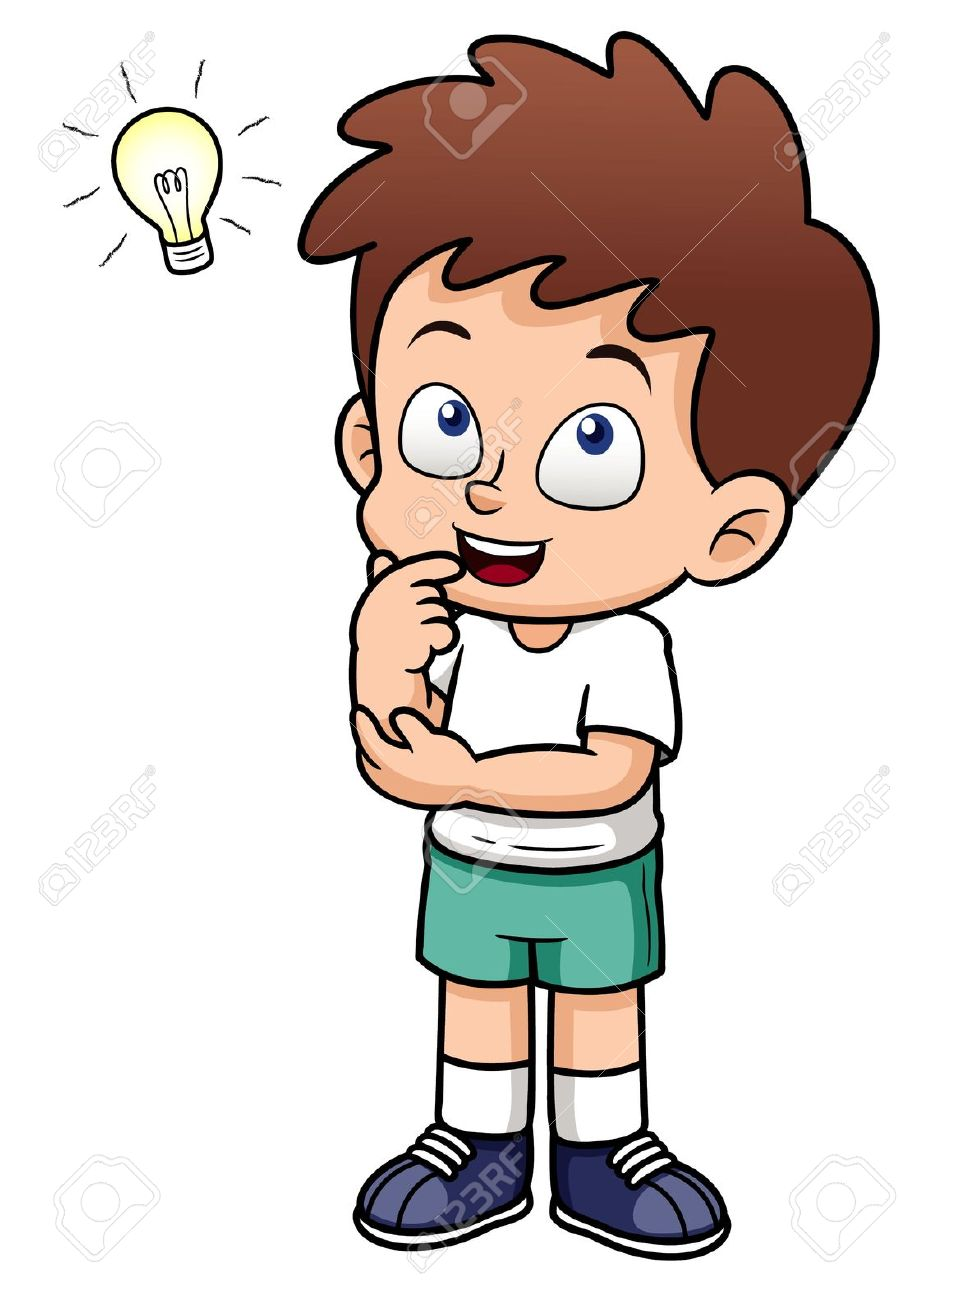 Animated boy thinking clipart graphic library stock Best Child Thinking Clipart #14285 - Clipartion.com graphic library stock